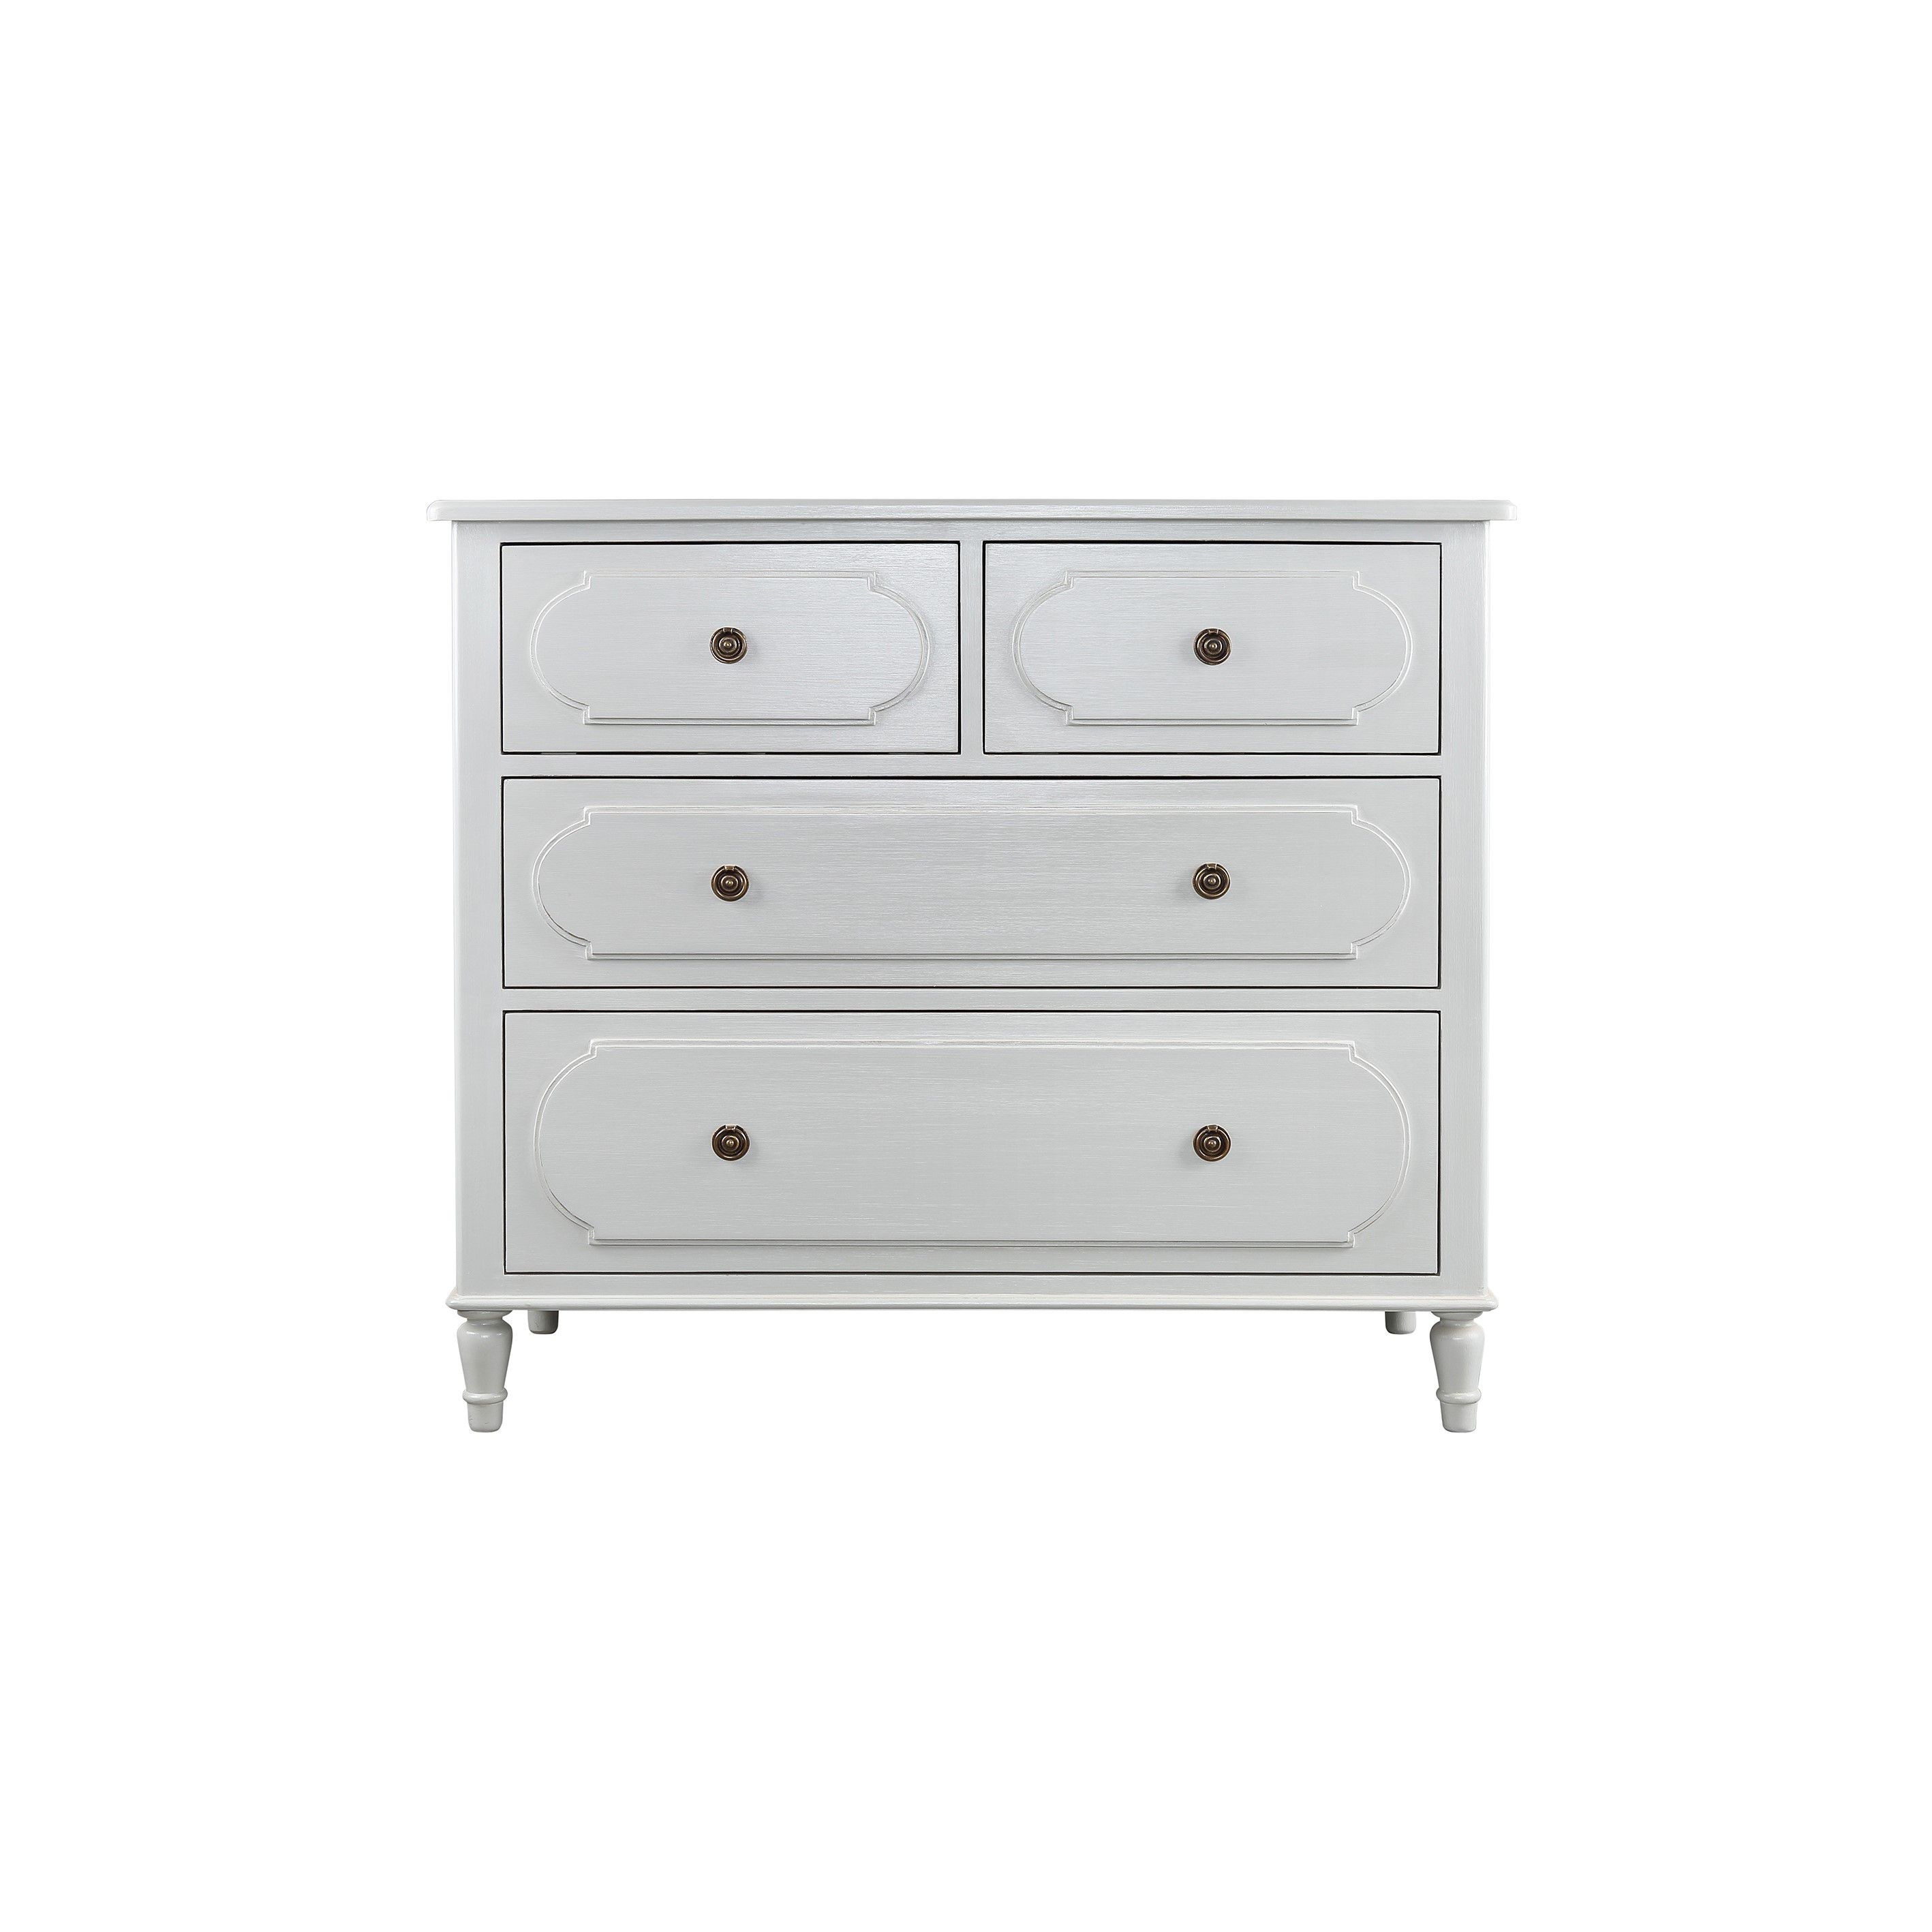 Junipa Flora chest of 4 drawers